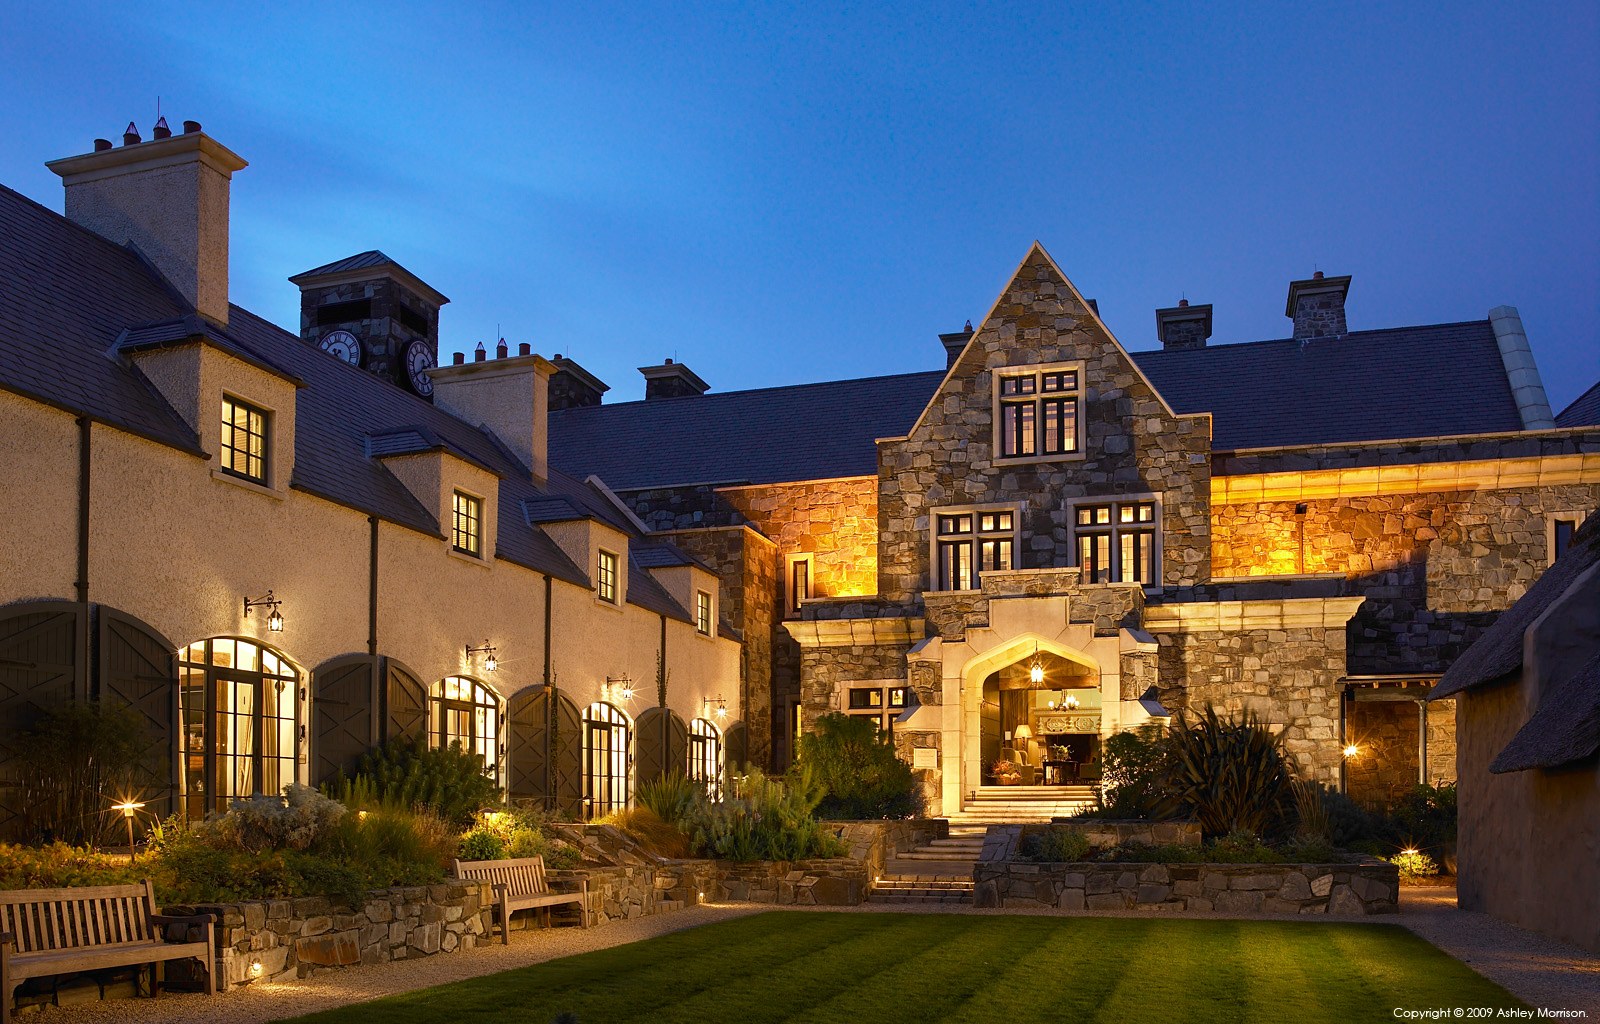 The Lodge at the Trump International Golf Links & Hotel in County Clare by Ashley Morrison.